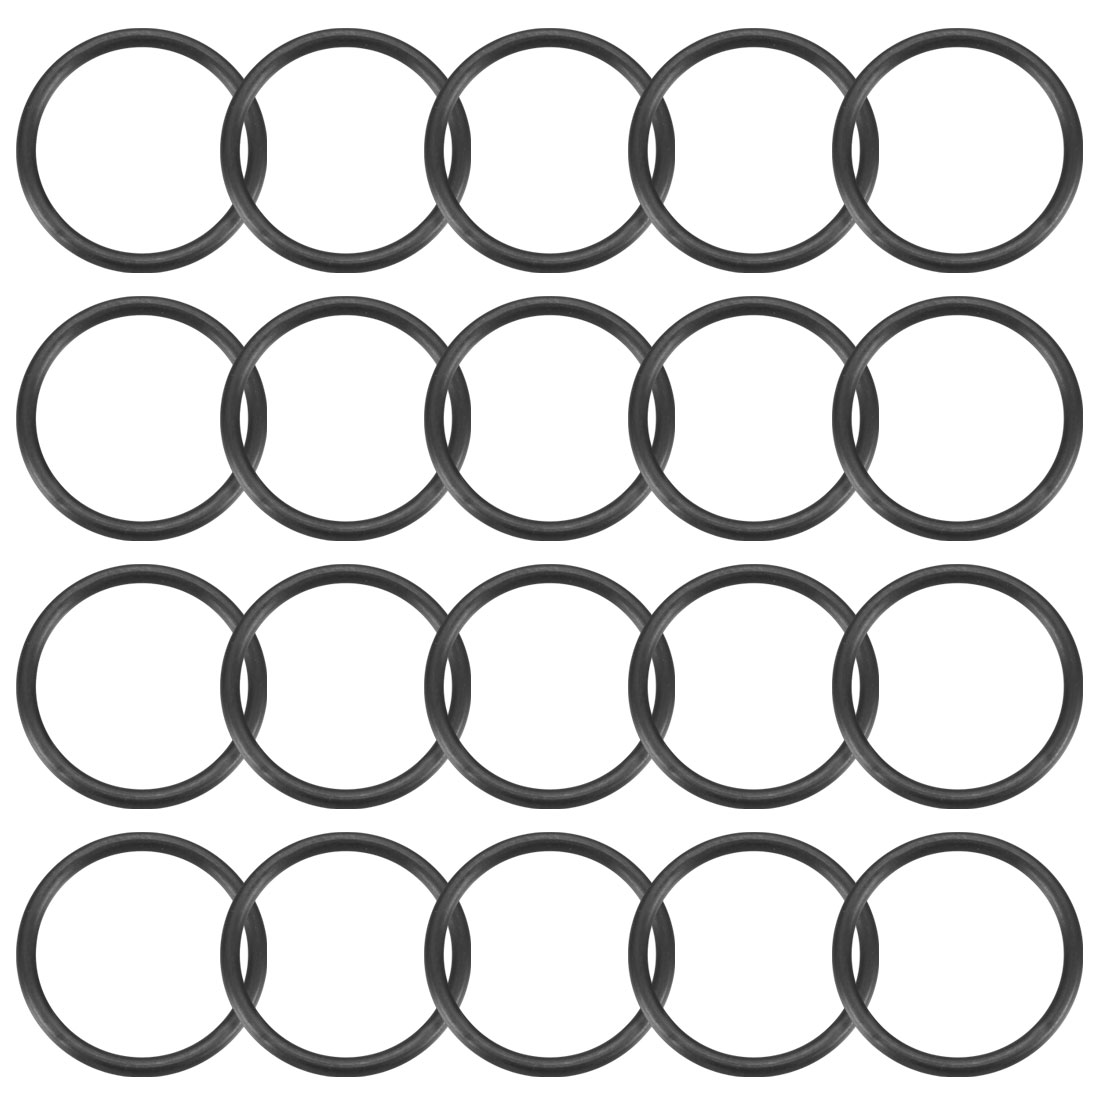 20 Pcs 17mm x 1.5mm Rubber O-rings NBR Heat Resistant Sealing Ring Grommets